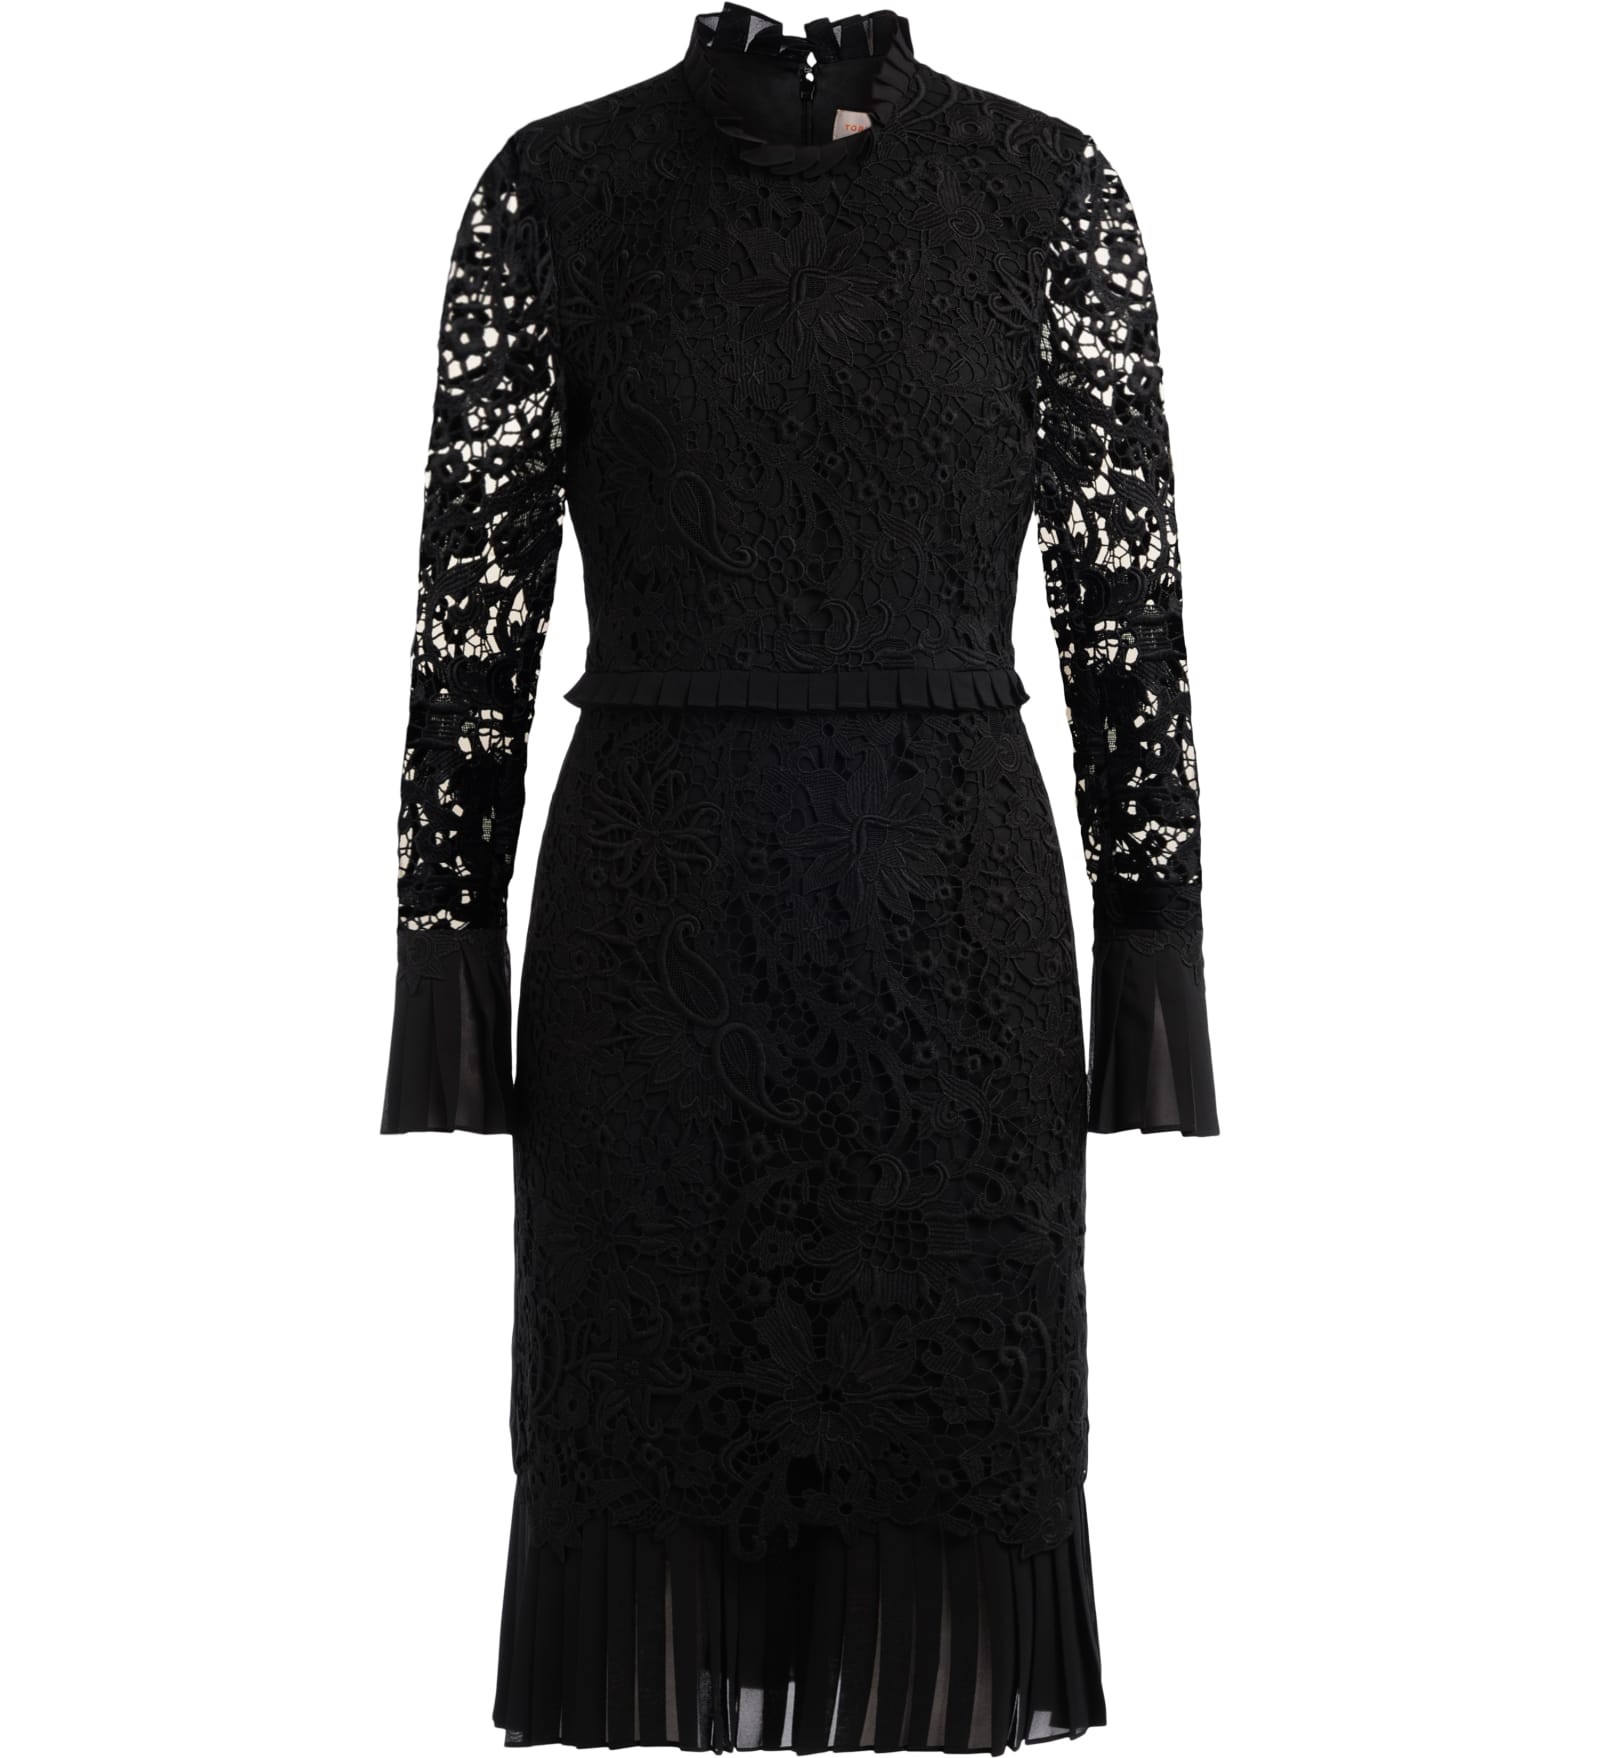 Buy Tory Burch Floral Pencil Dress Made Of Black Lace online, shop Tory Burch with free shipping